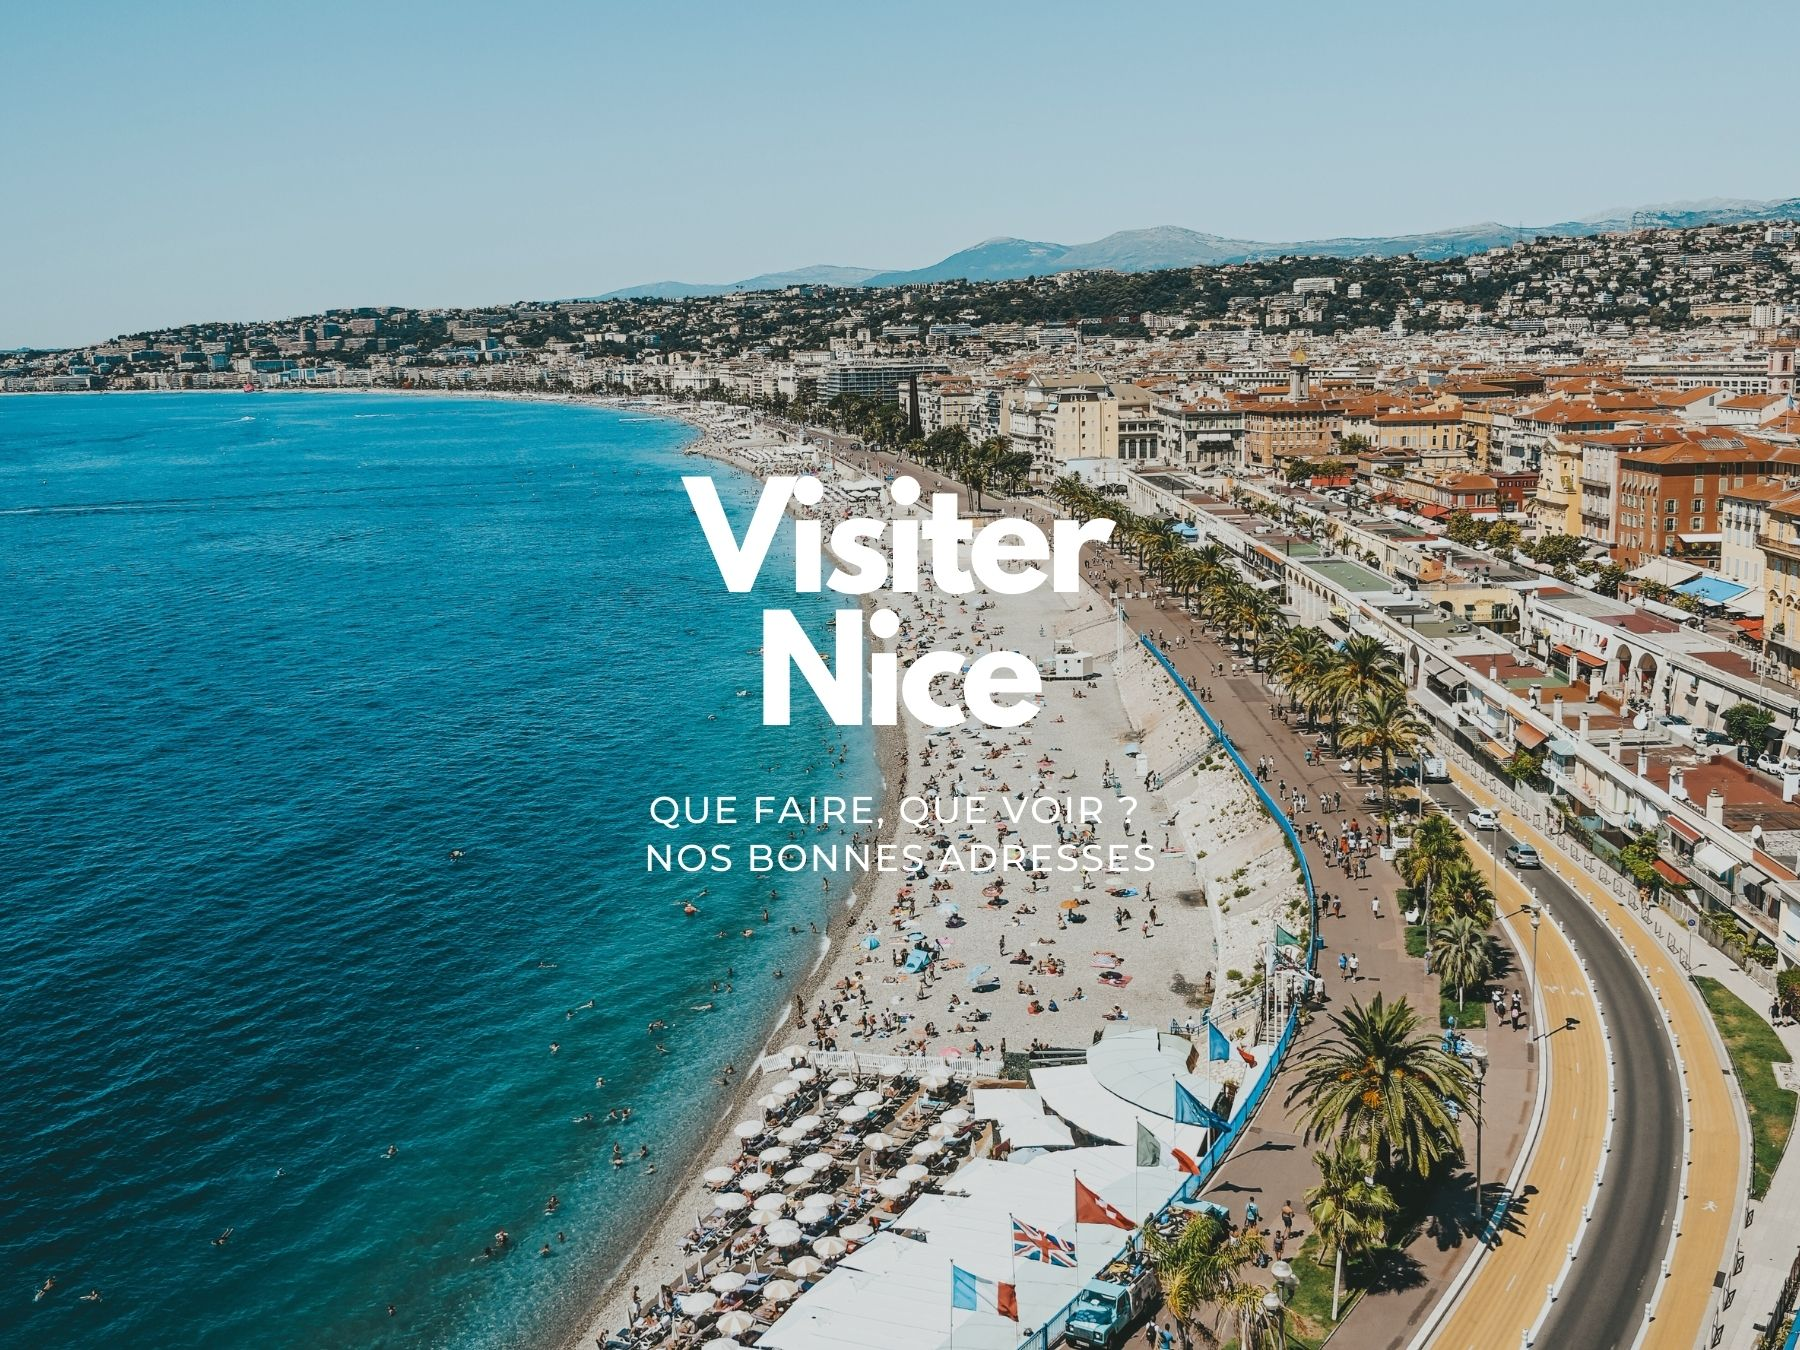 visiter nice guide